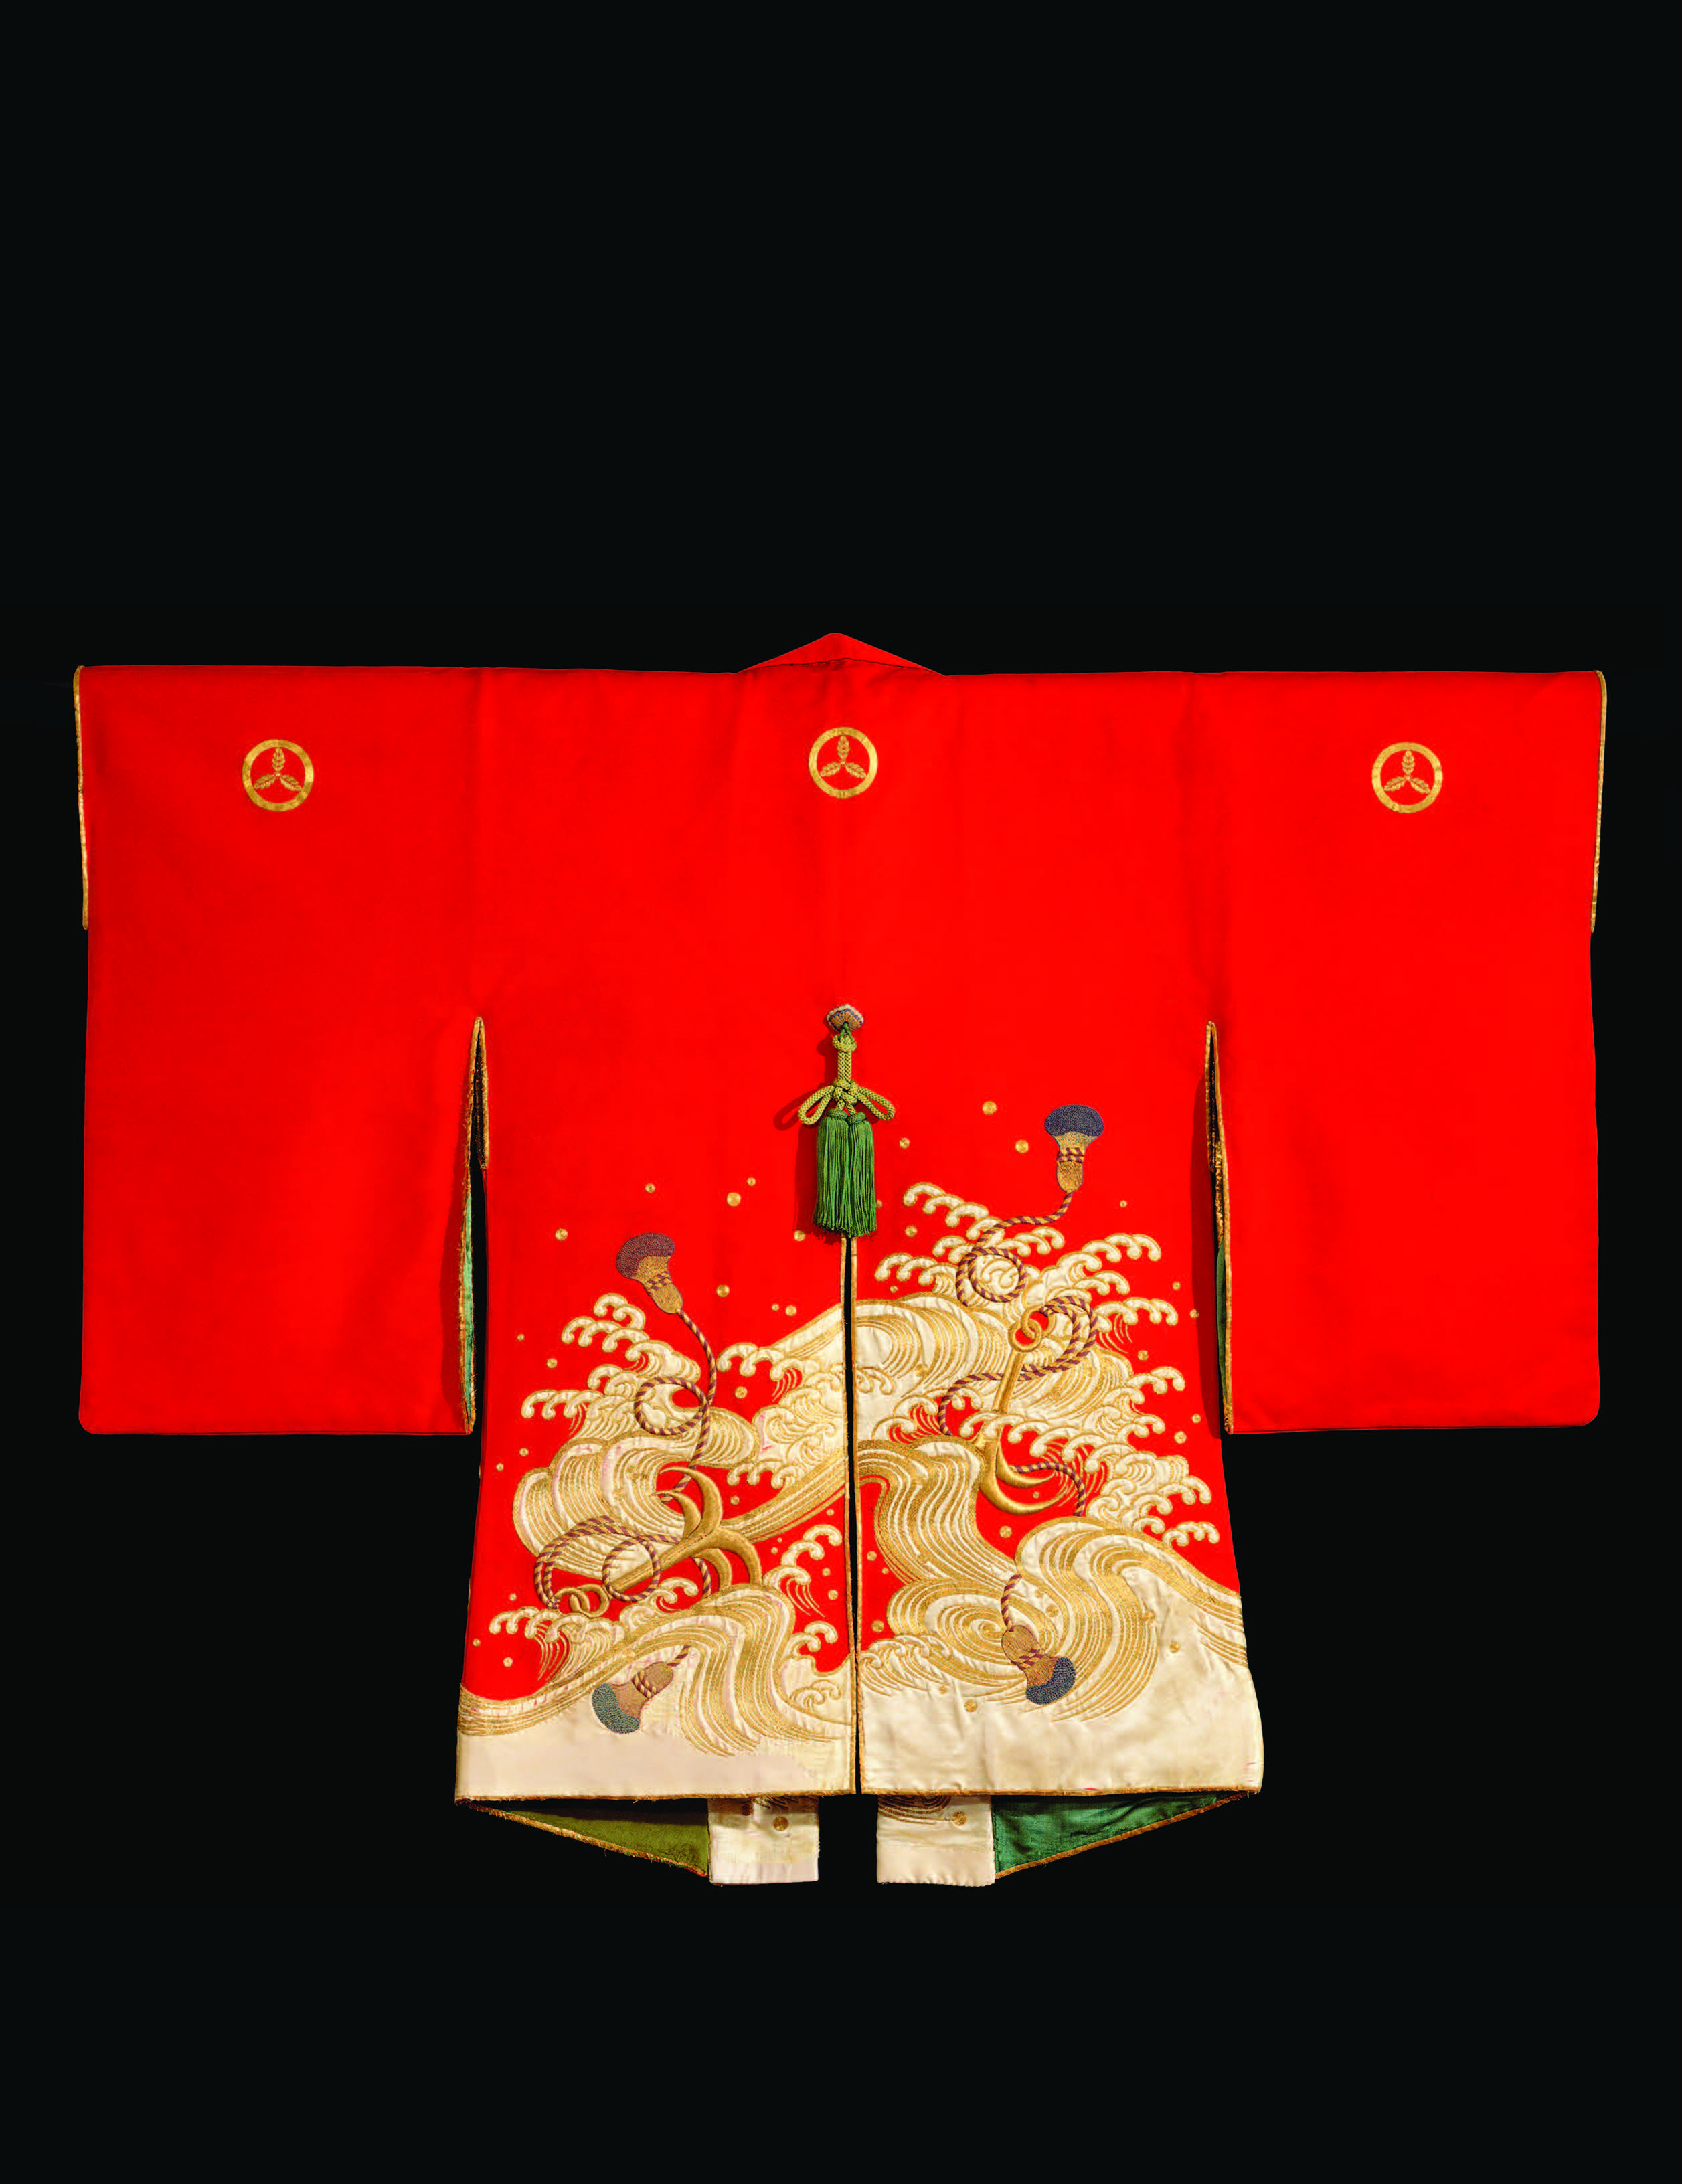 Firefighter's ceremonial coat (kajibanten), Japan, eighteenth– nineteenth century, Edo period. This cochineal-dyed cape was likely only used for ceremonial purposes. A sturdier coat, often made of leather, would be worn during firefighting. Wood with gold- and silk-thread embroidery and appliqué, 38 × 48 in. John C. Weber Collection. Photograph by John Bigelow Taylor.